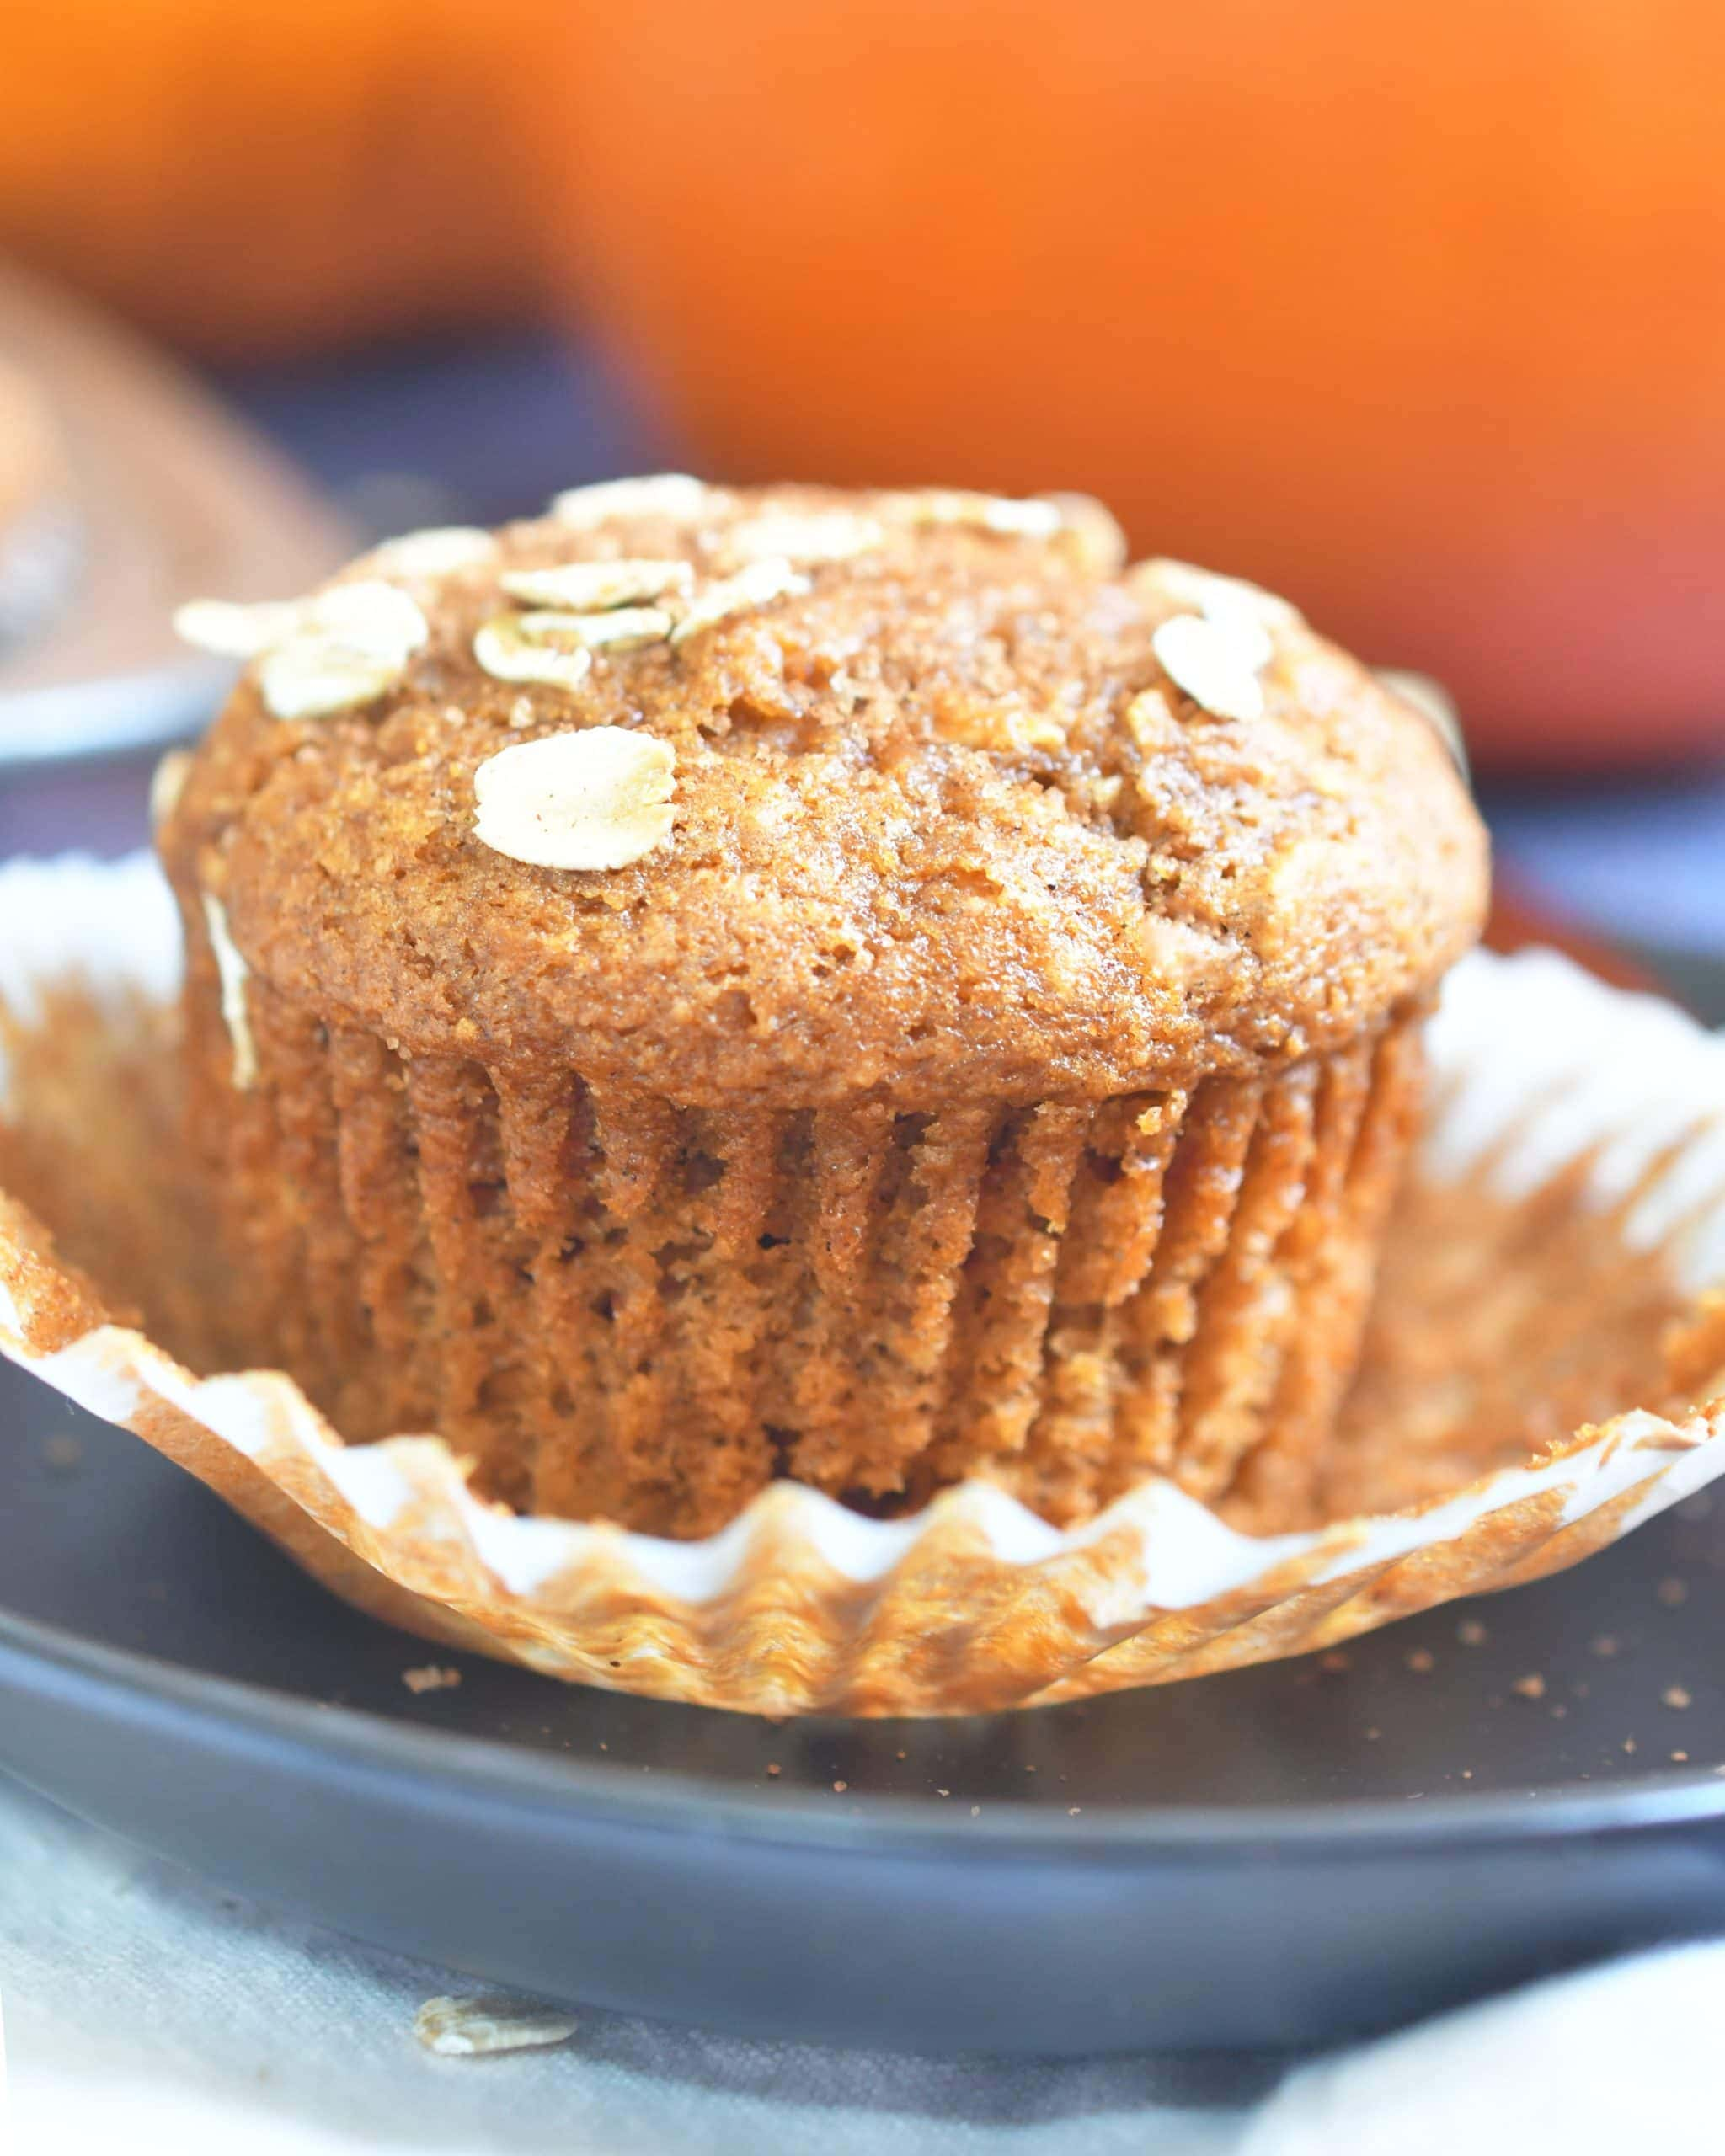 pumpkin oat muffin on a paper liner on top of a brown plate with an orange pumpkin in the background